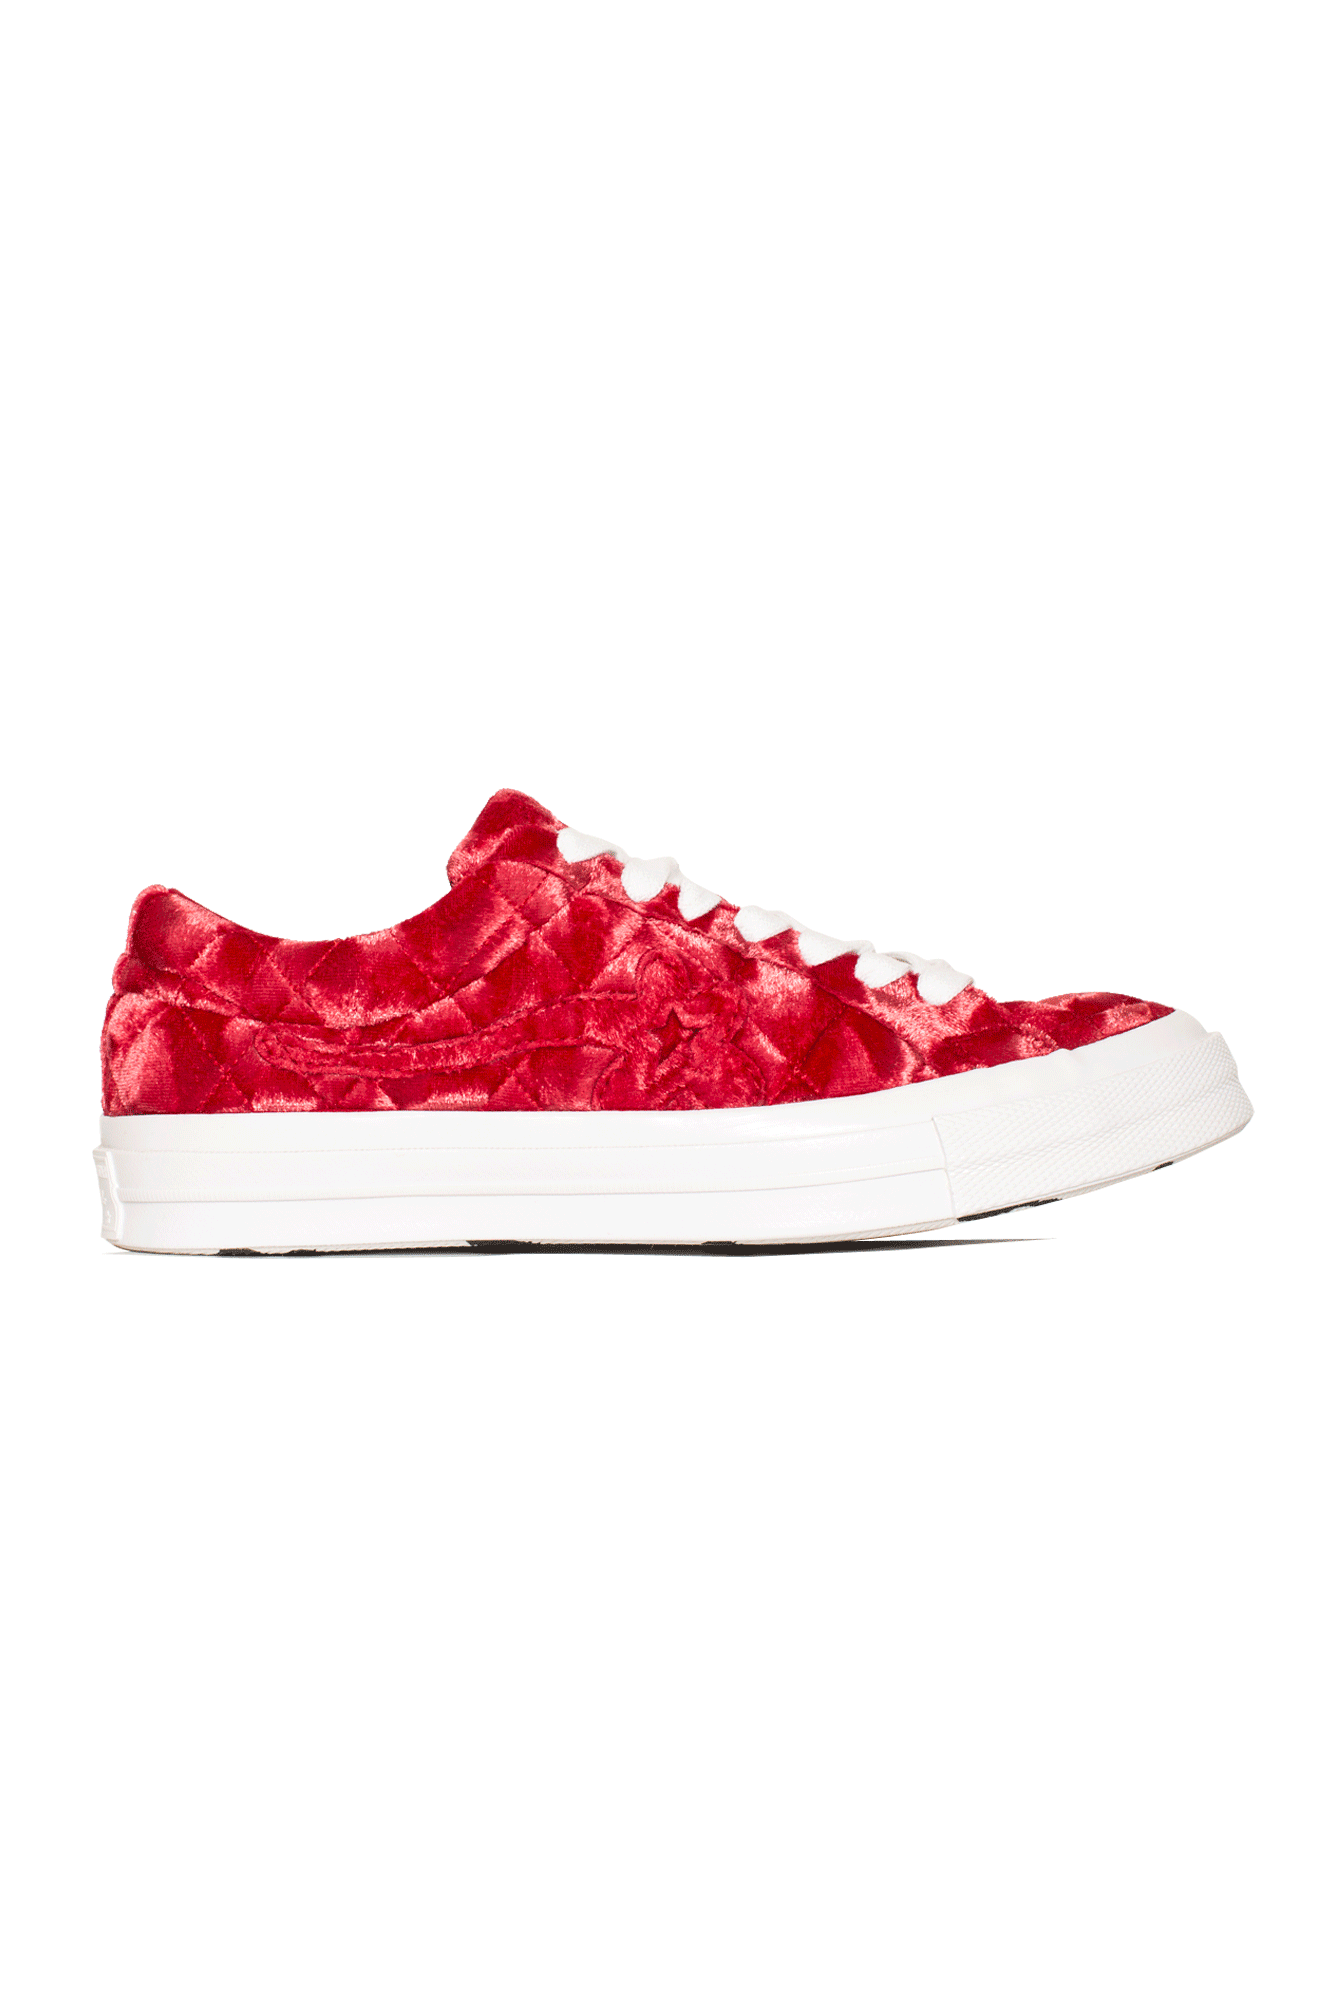 Converse Sneakers TTC Quilted Velvet Red 165598C#000#C0012#4 - One Block Down